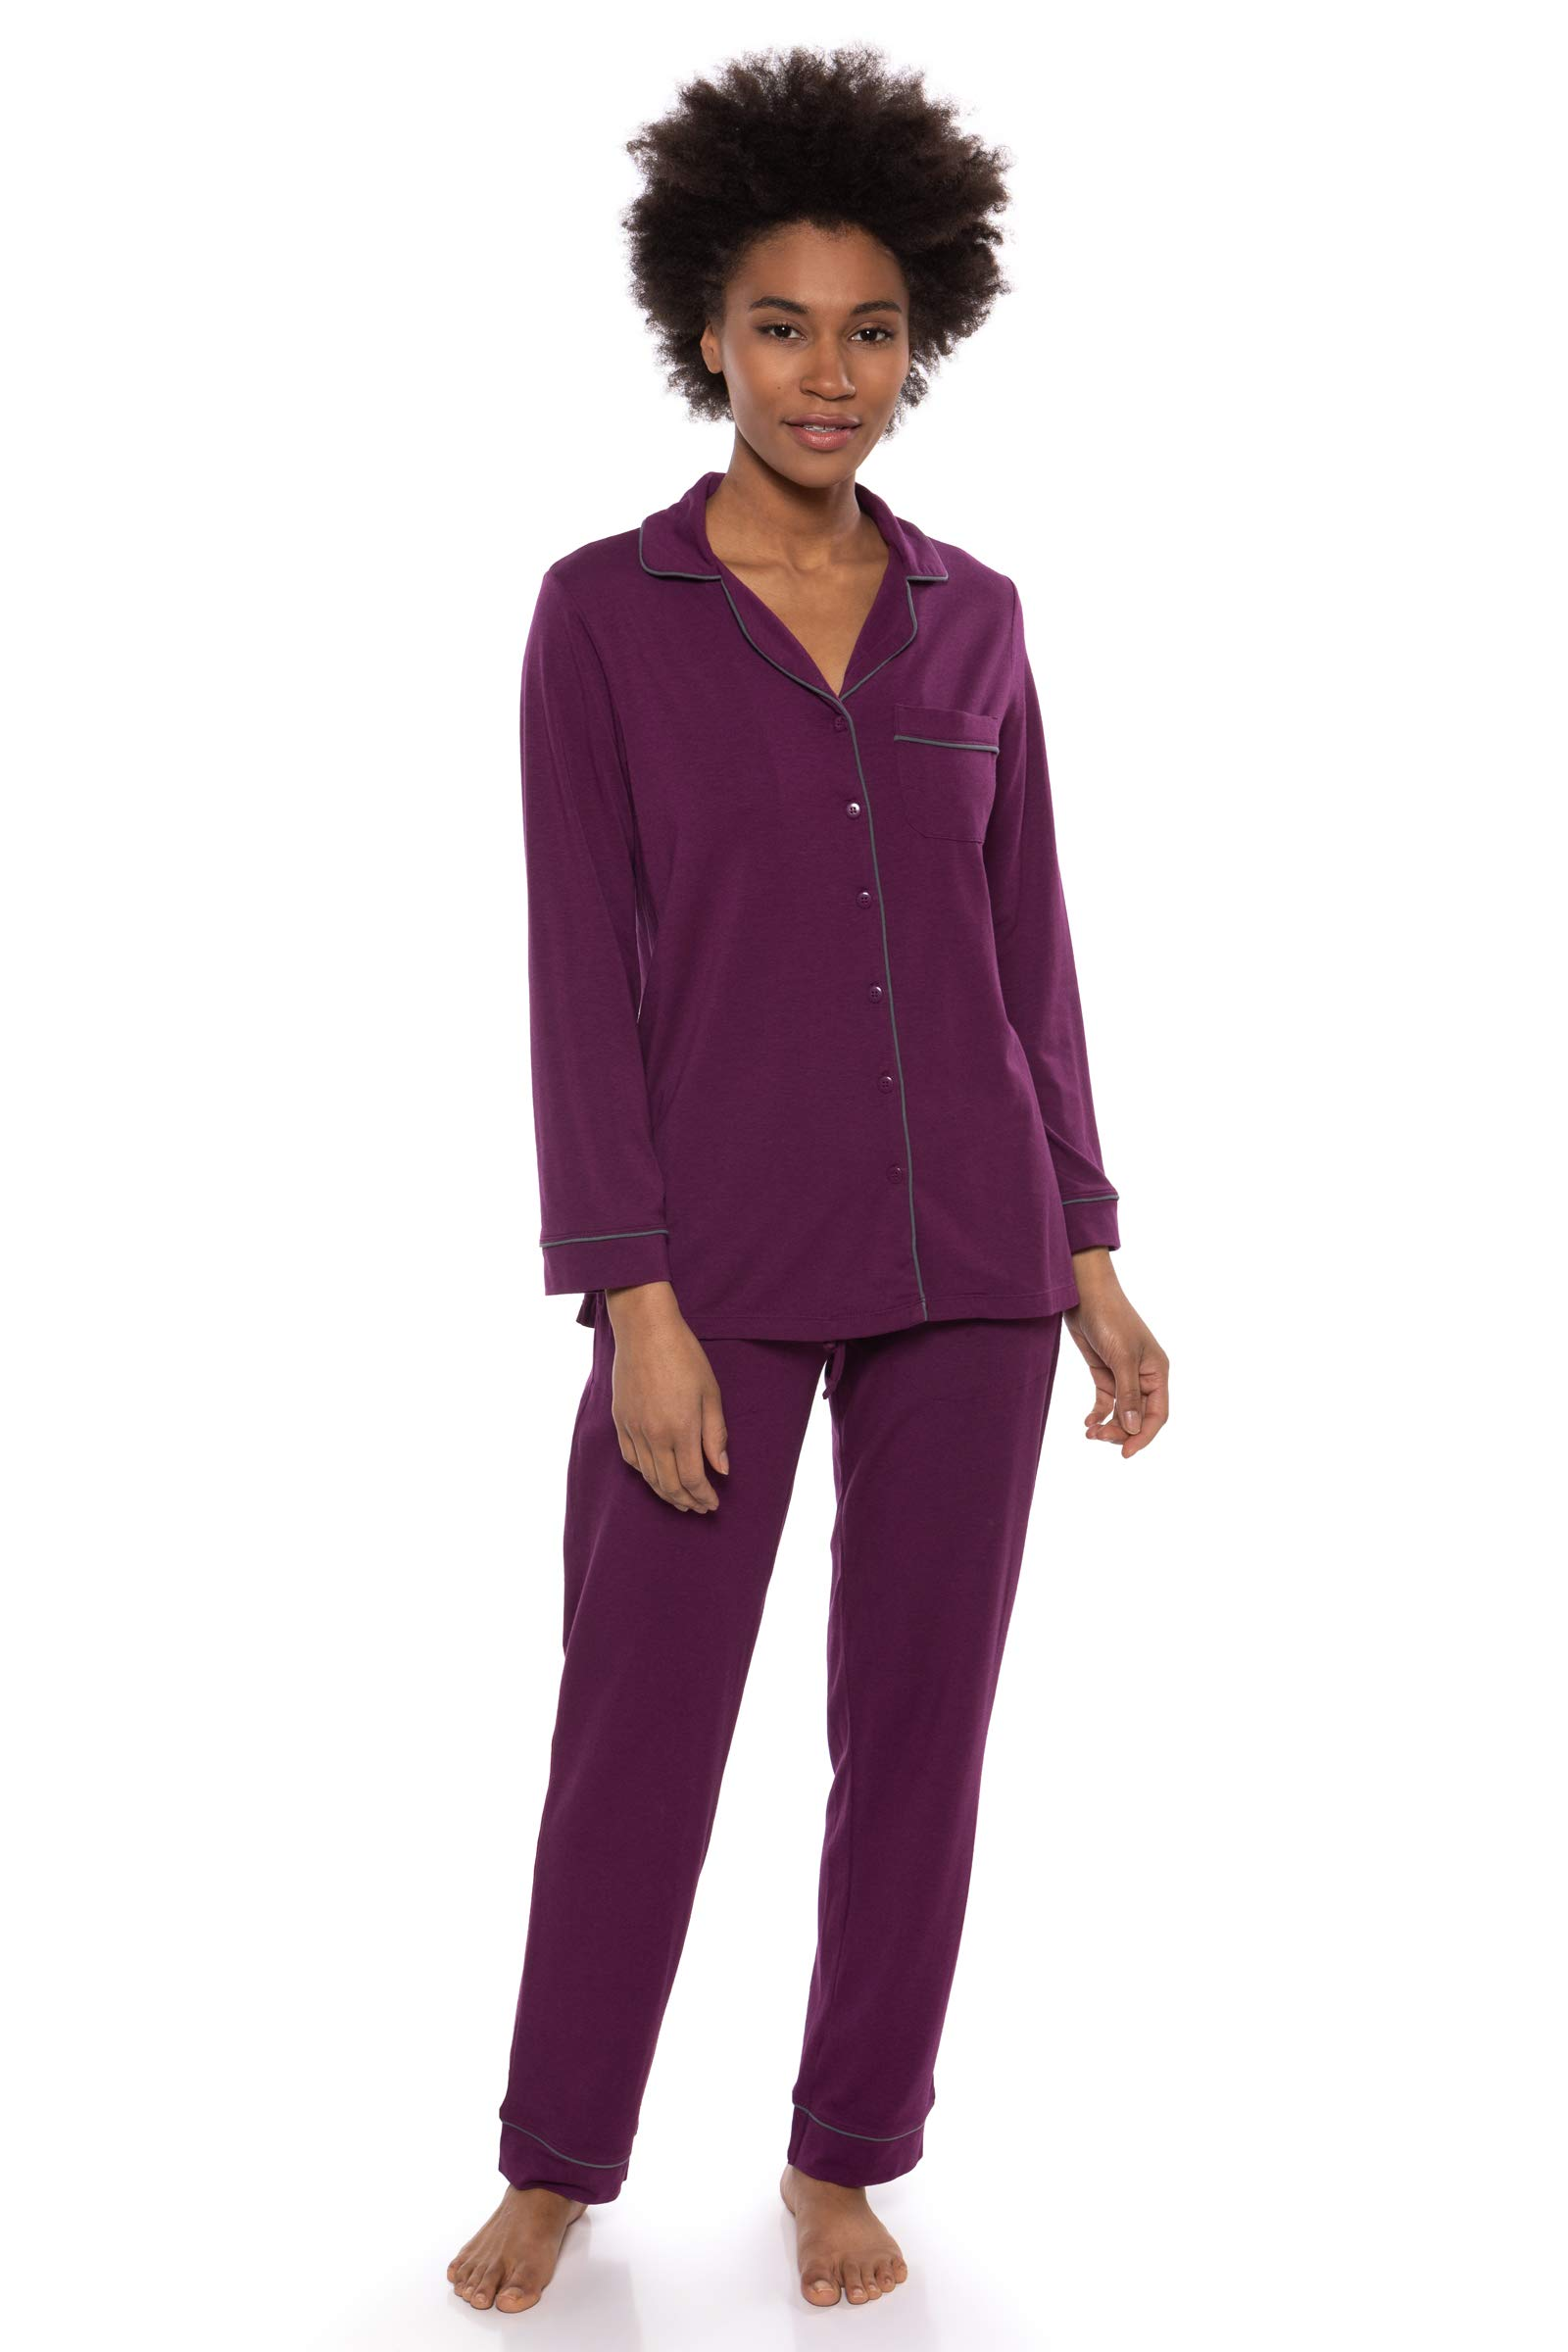 Women's Button-Up Long Sleeve Pajamas - Sleepwear Set by Texere (Classicomfort)